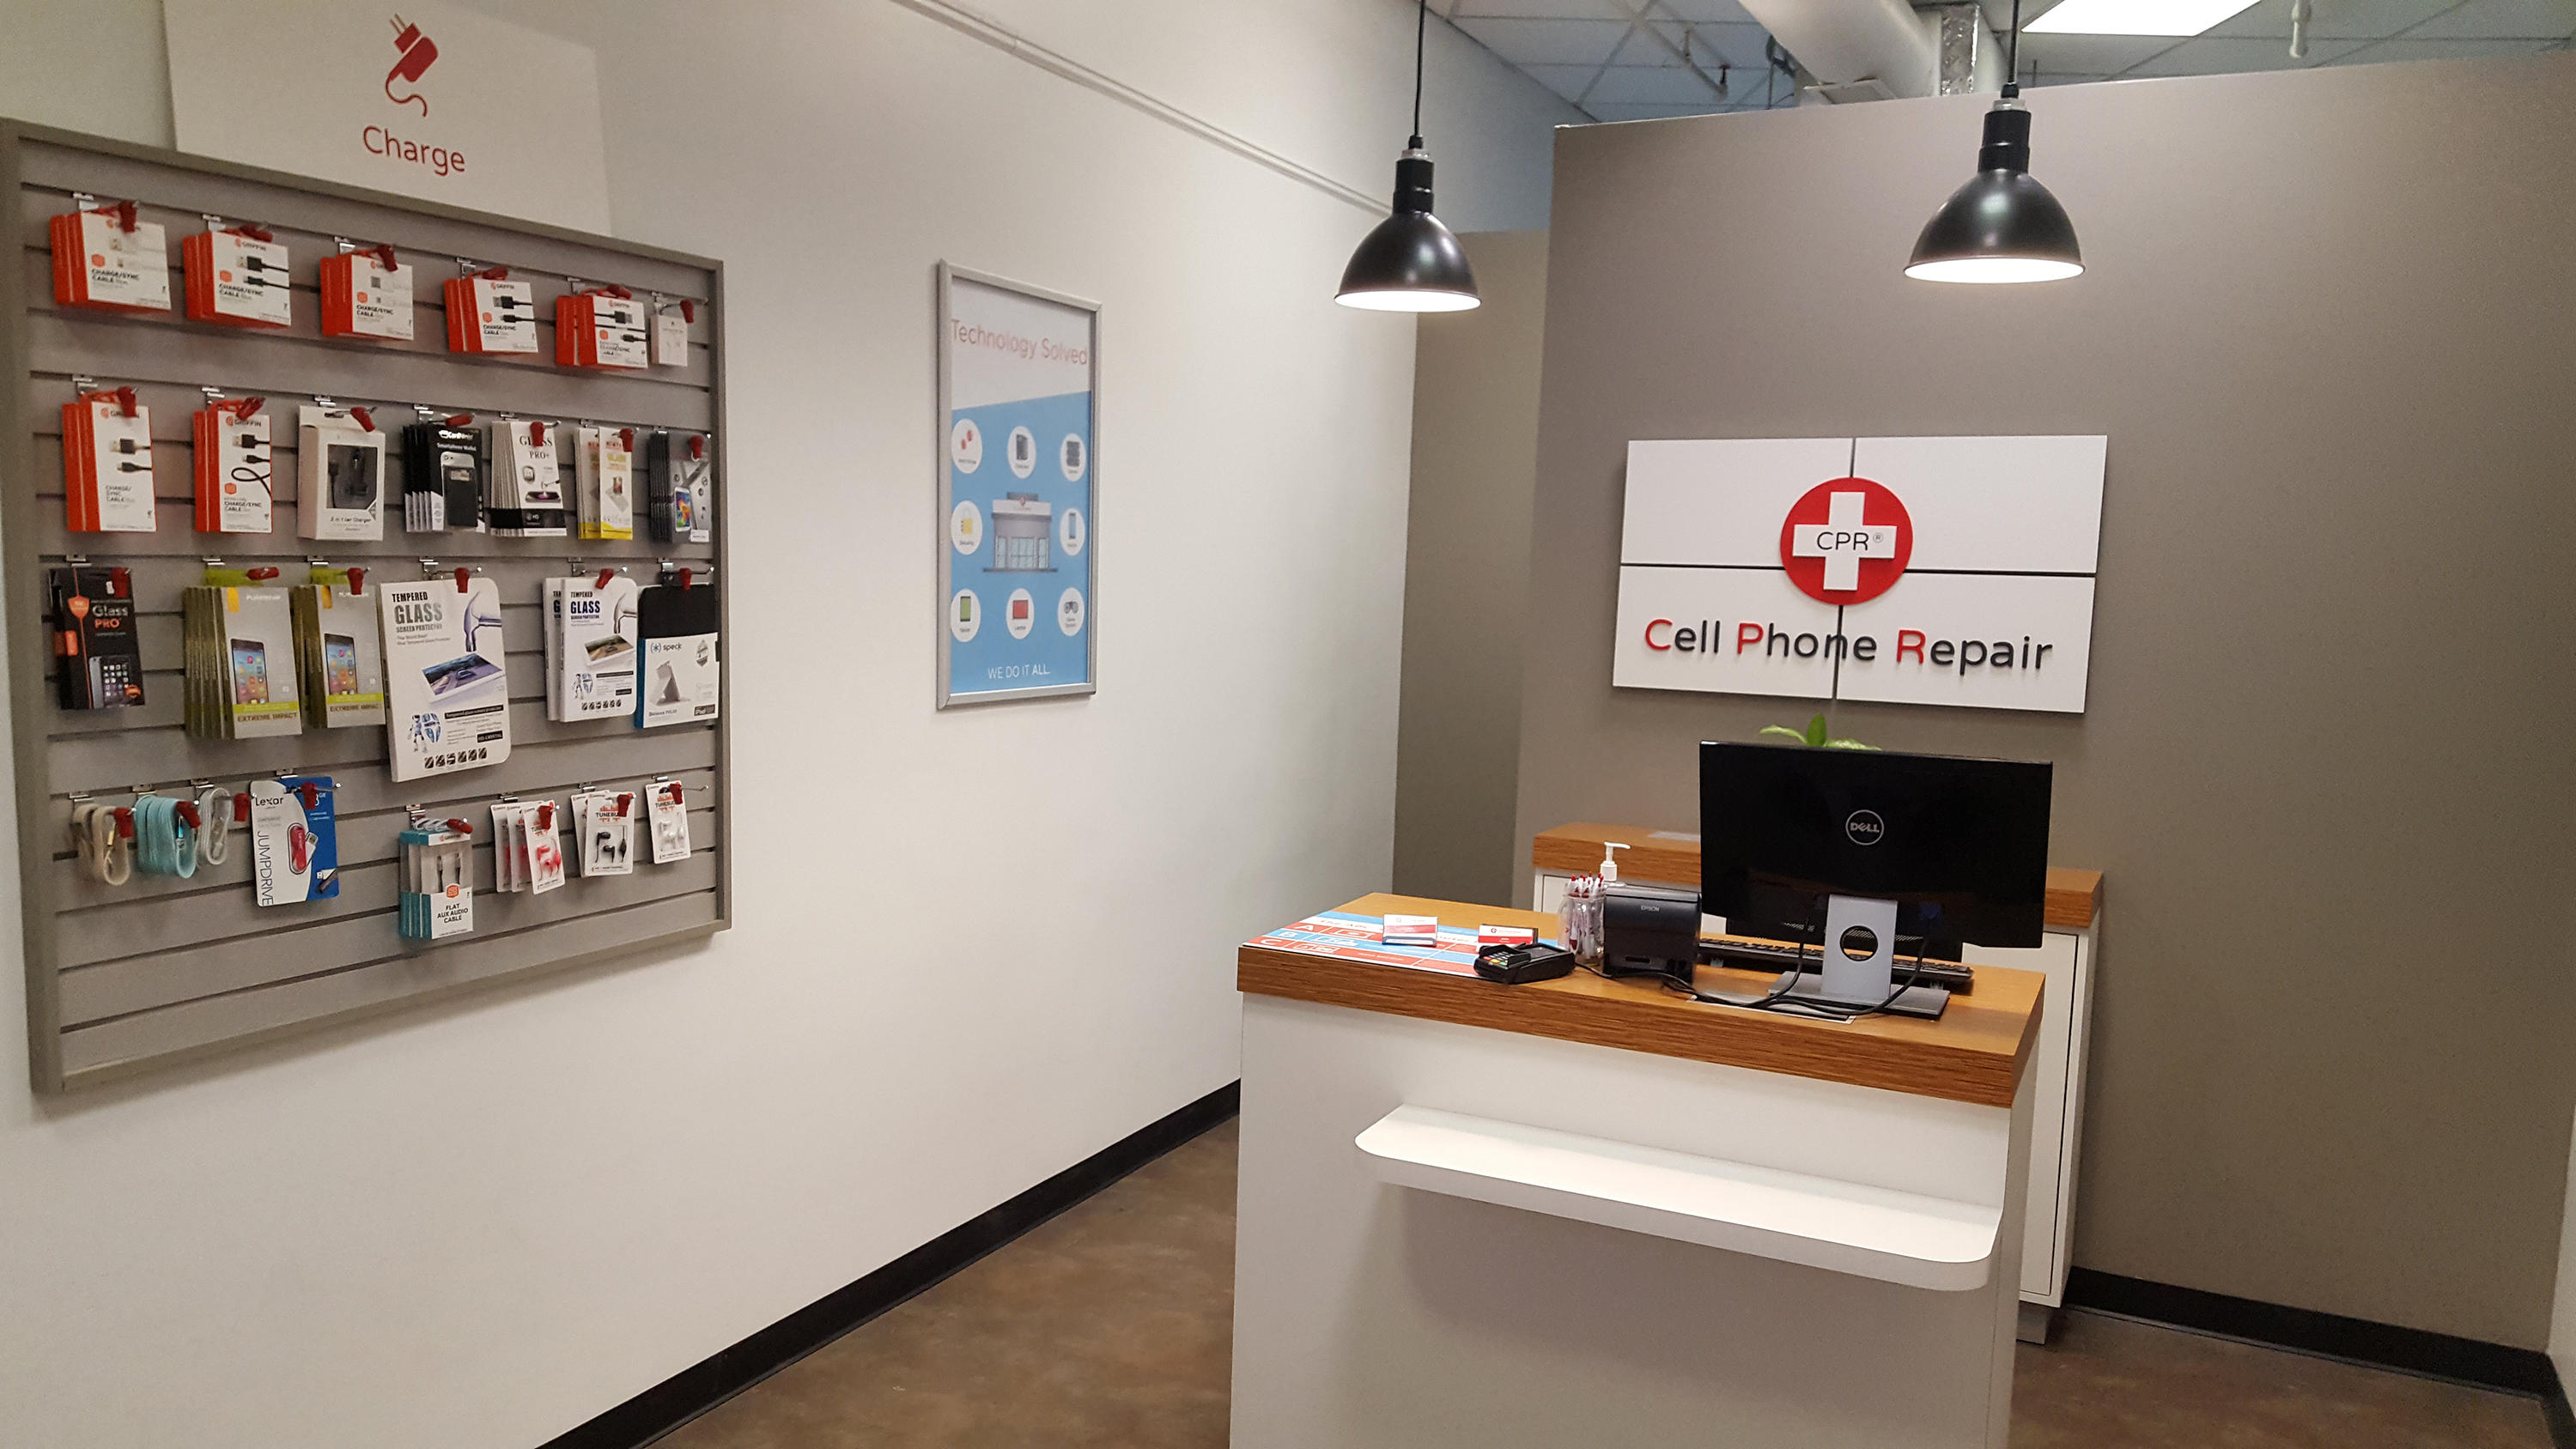 Cpr cell phone repair charlotte uptown 320 south tryon street cpr cell phone repair charlotte uptown 320 south tryon street suite 104 charlotte nc cell phones mapquest 1betcityfo Images